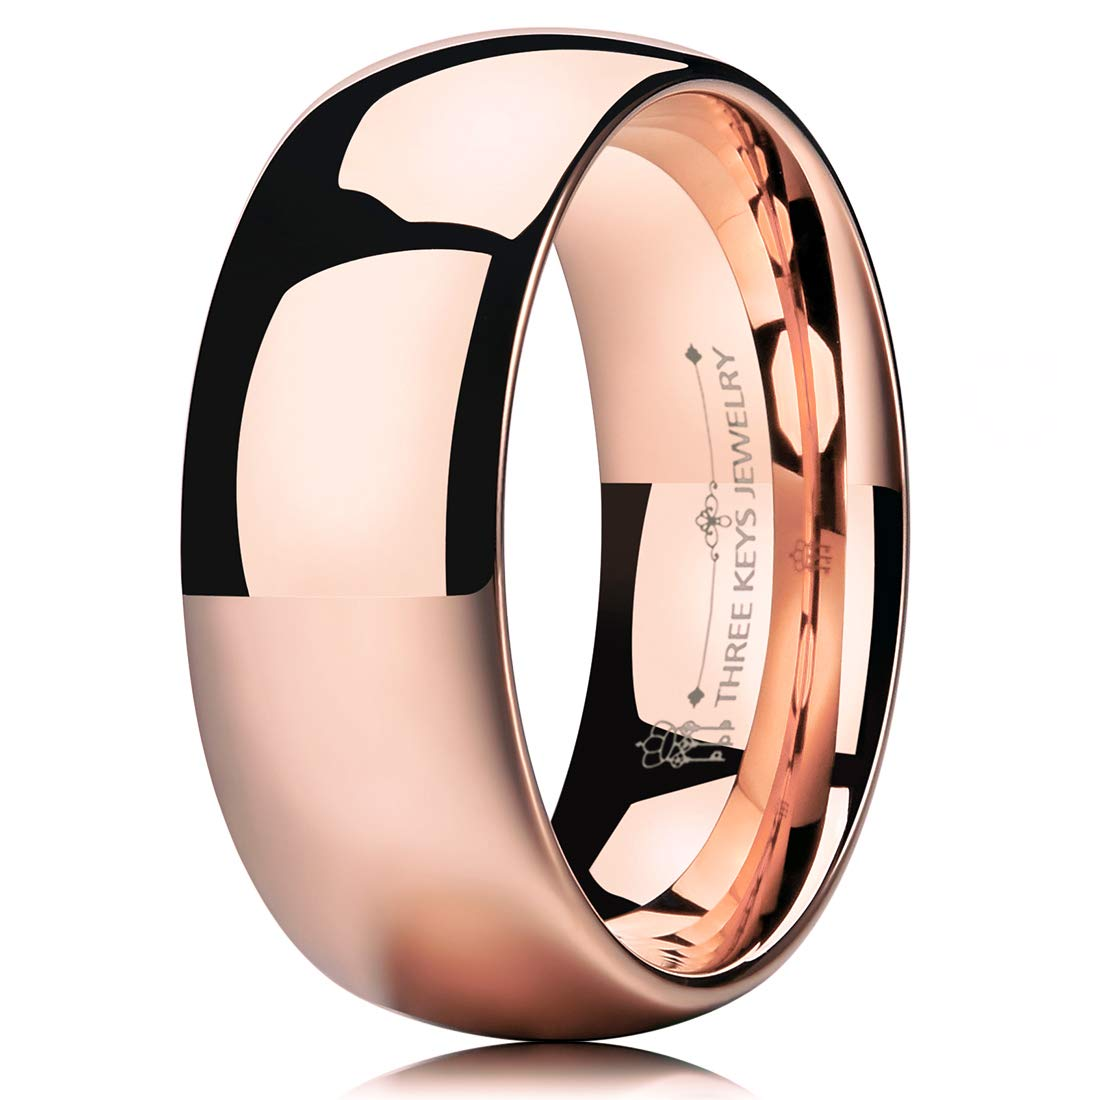 THREE KEYS JEWELRY 2mm 4mm 6mm 8mm Tungsten Wedding Ring for Women Plated Rose Gold Engagement Band Ring TR080-VARIATION